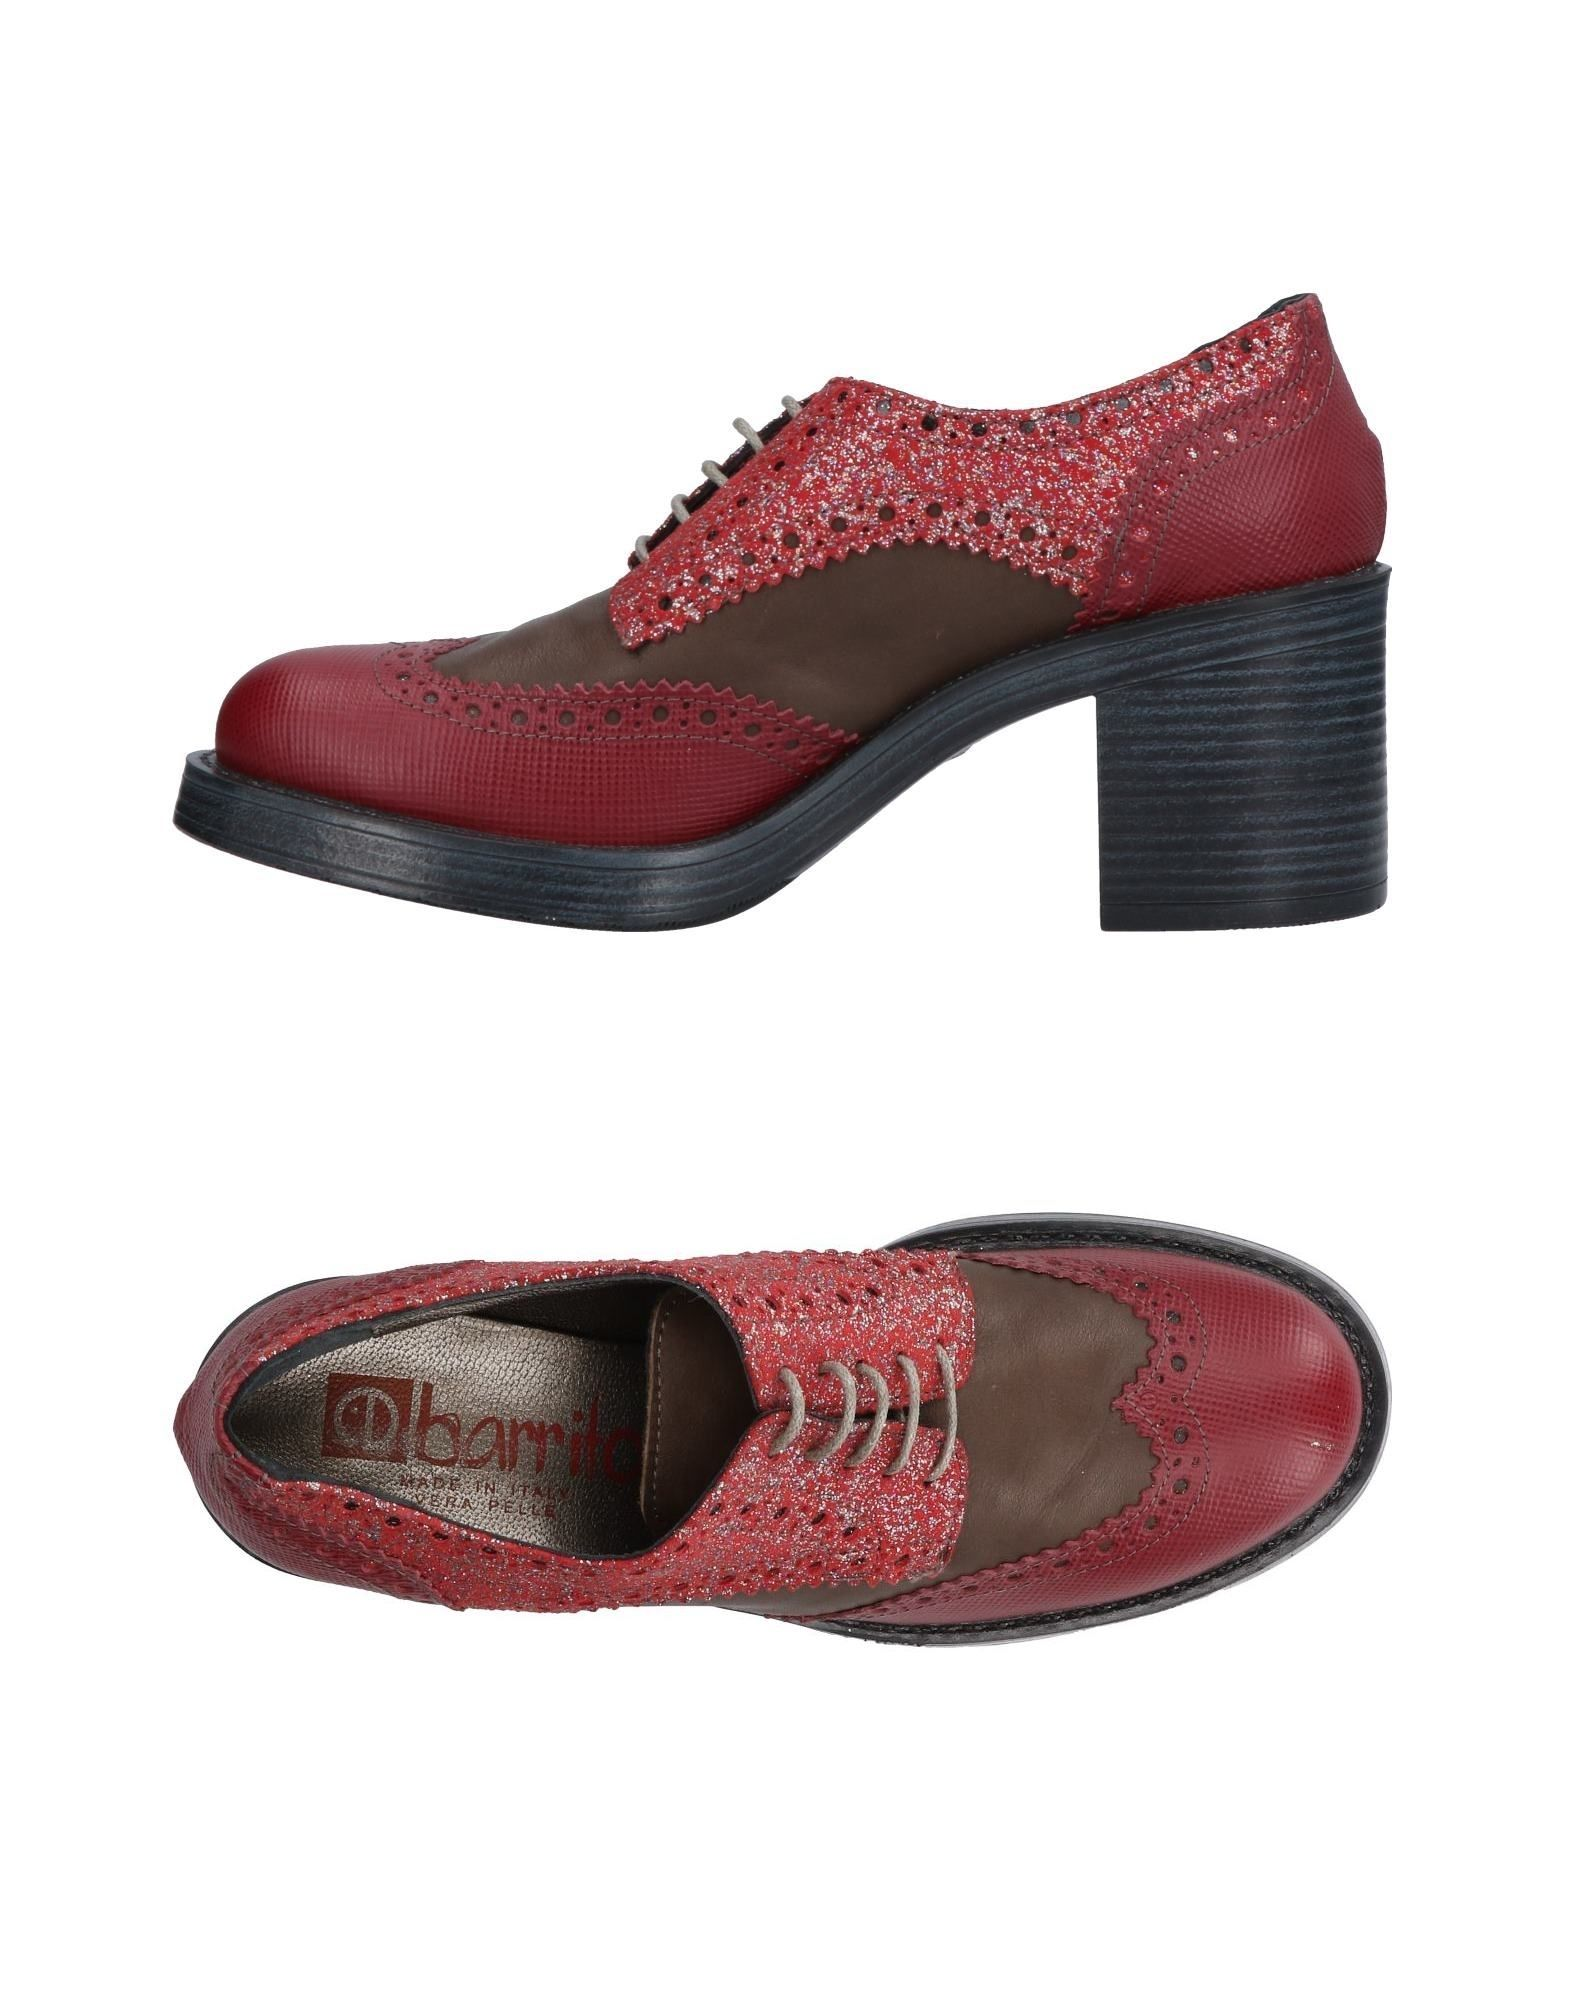 CHAUSSURES - TongsSwissies aR00sY